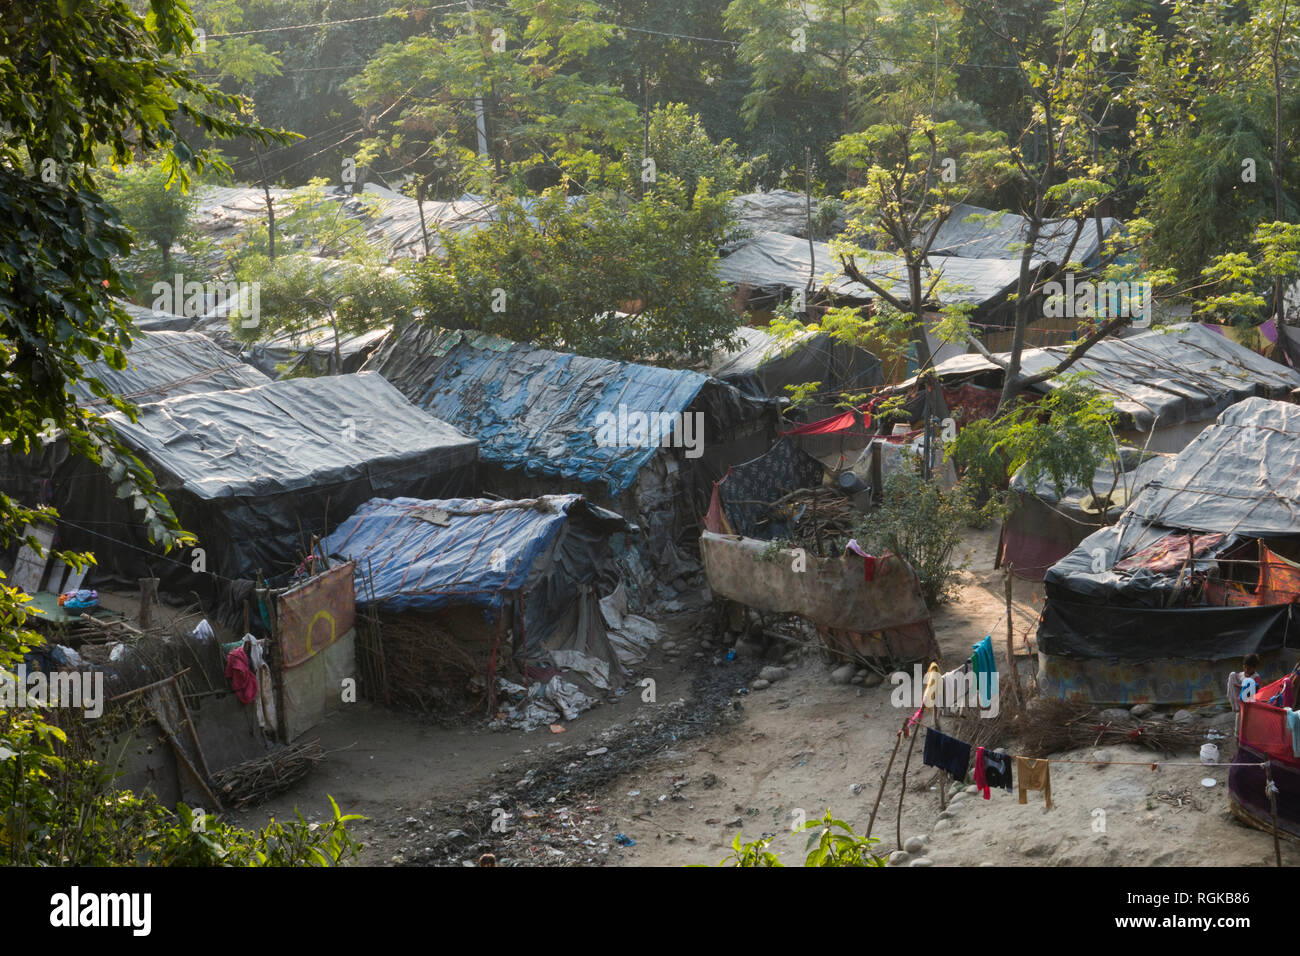 Basic shelter of poverty community living on the outskirts of Haridwar, Uttarakhand, India - Stock Image